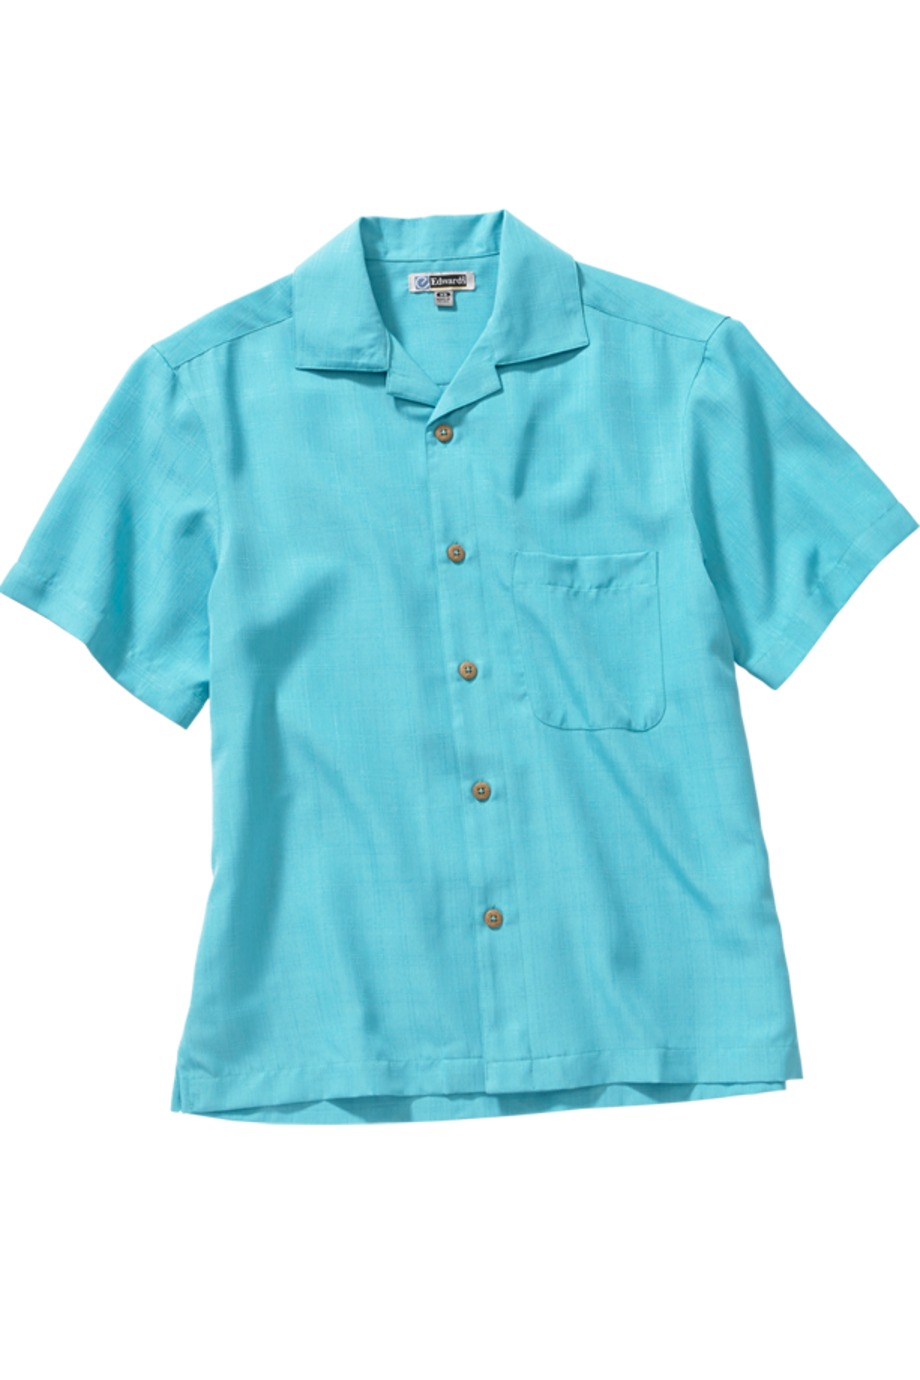 Edwards Garment 1030 - Jacquard Batiste Camp Shirt